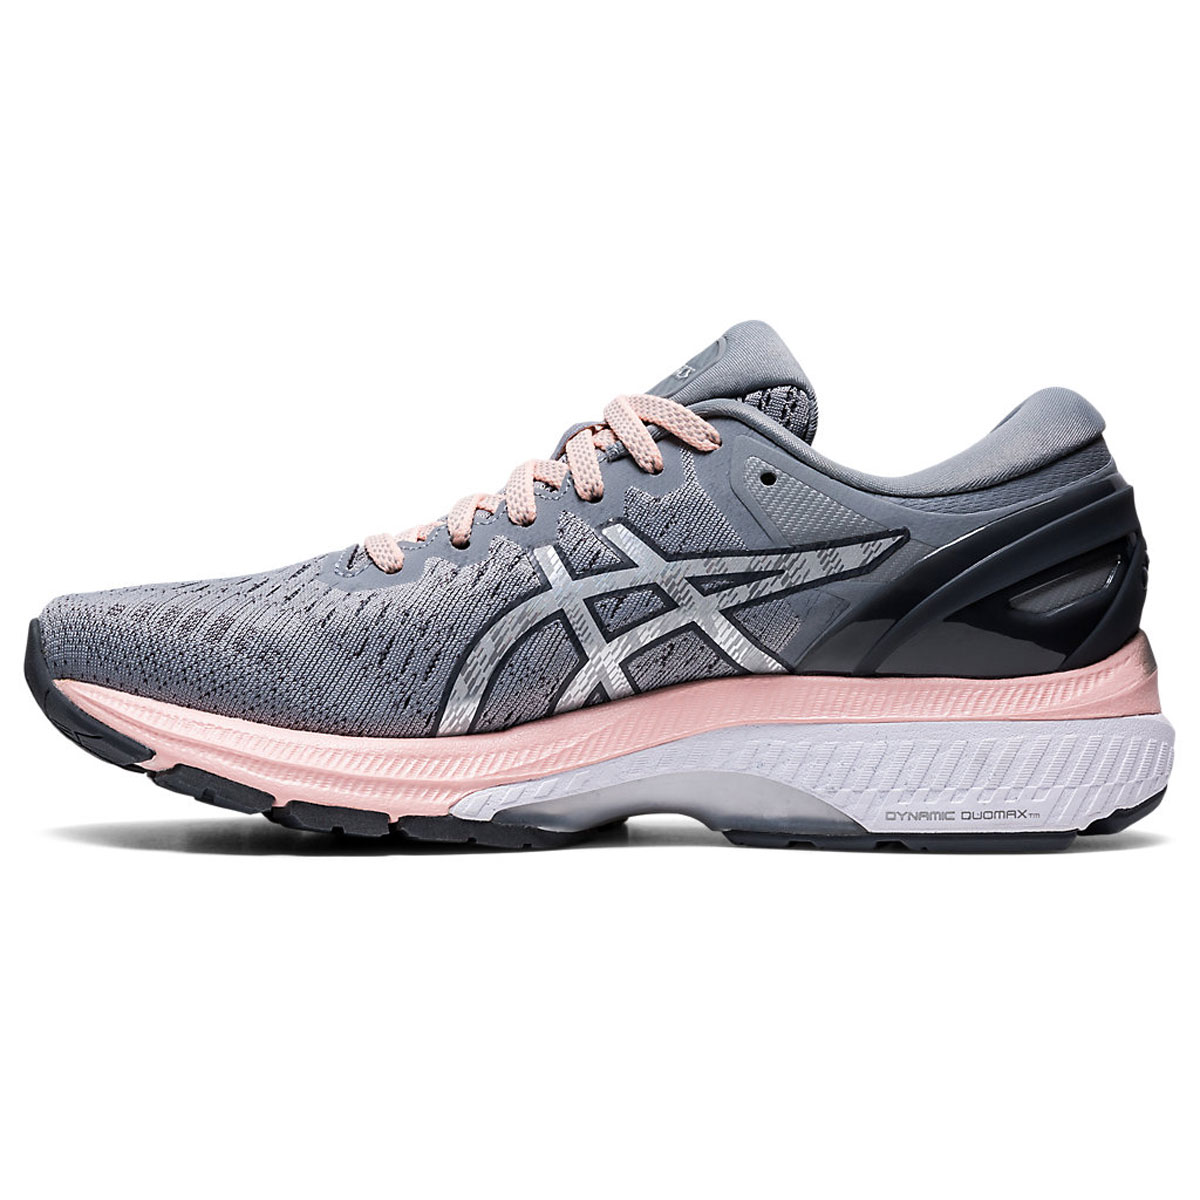 Women's Asics GEL-Kayano 27 Running Shoe - Color: Sheet Rock/Pure (Regular Width) - Size: 5, Sheet Rock/Pure, large, image 2